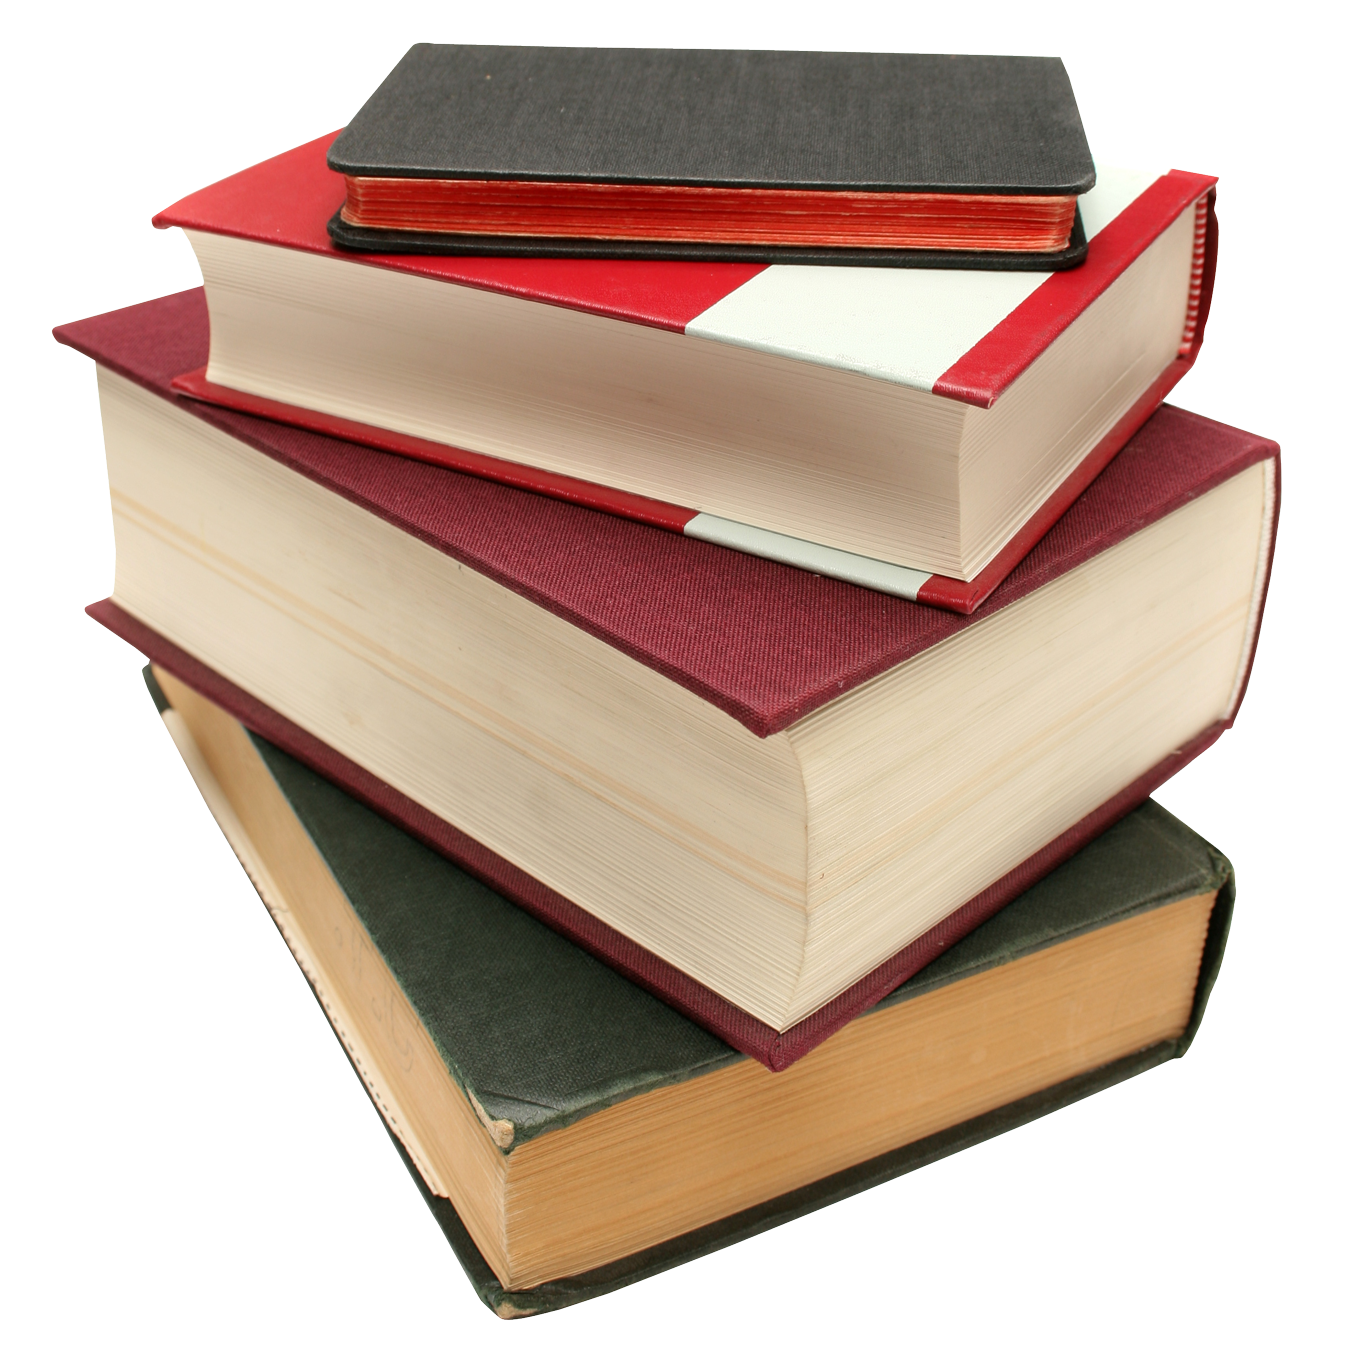 Stack of books png. Book images pngpix old